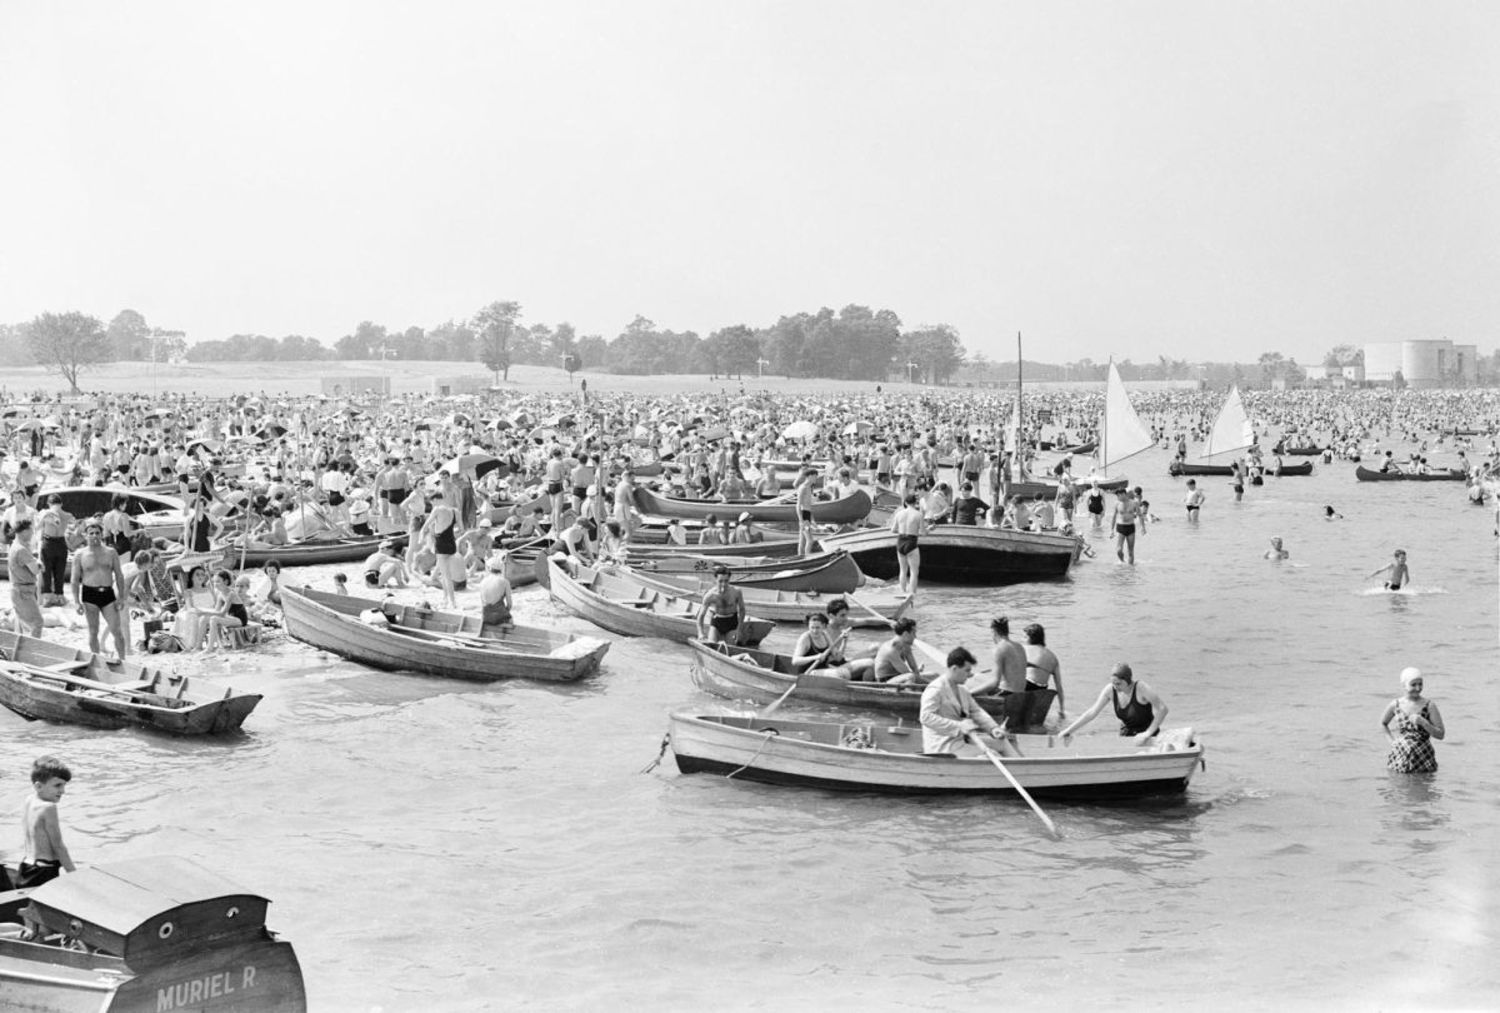 Row boats at Orchard Beach, Bronx, 1938